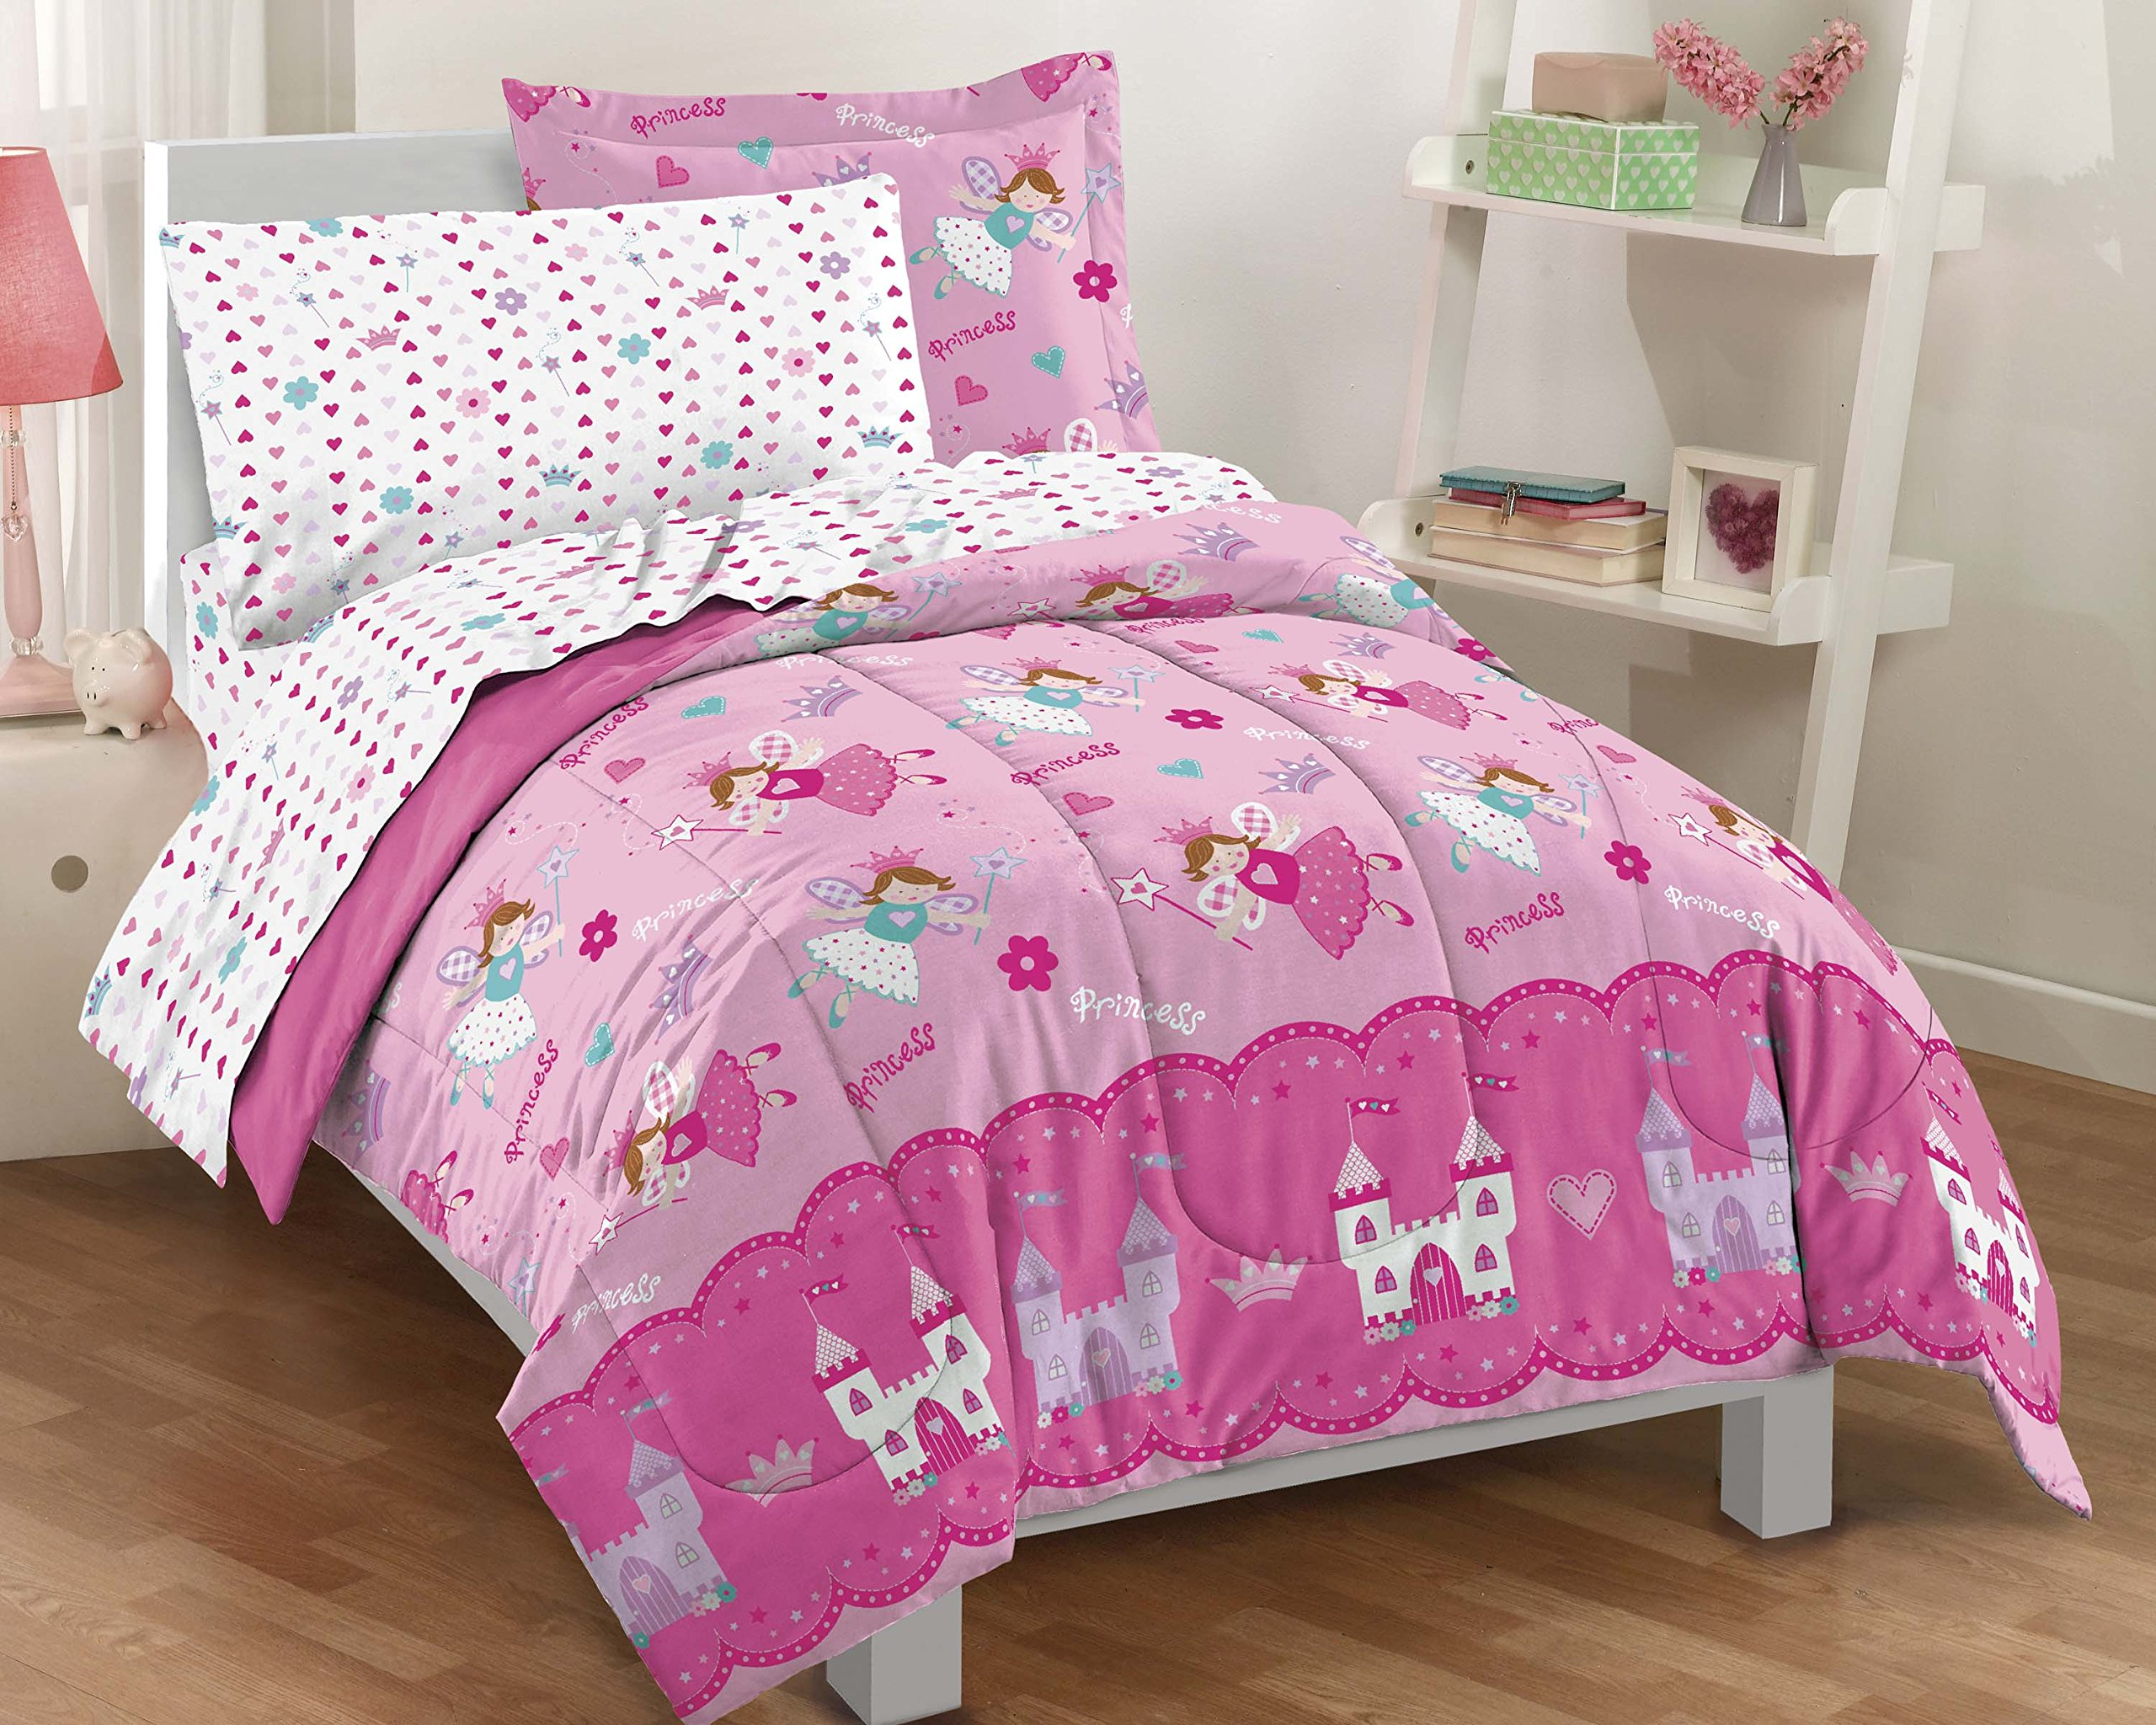 outstanding trade of amazing sets size kids war army ncaa double navy inspirations basketball boys dinosaur additional cover china birds pictures full girls trending bracketology unicorn bracket bedding now trump march us madness duvet with